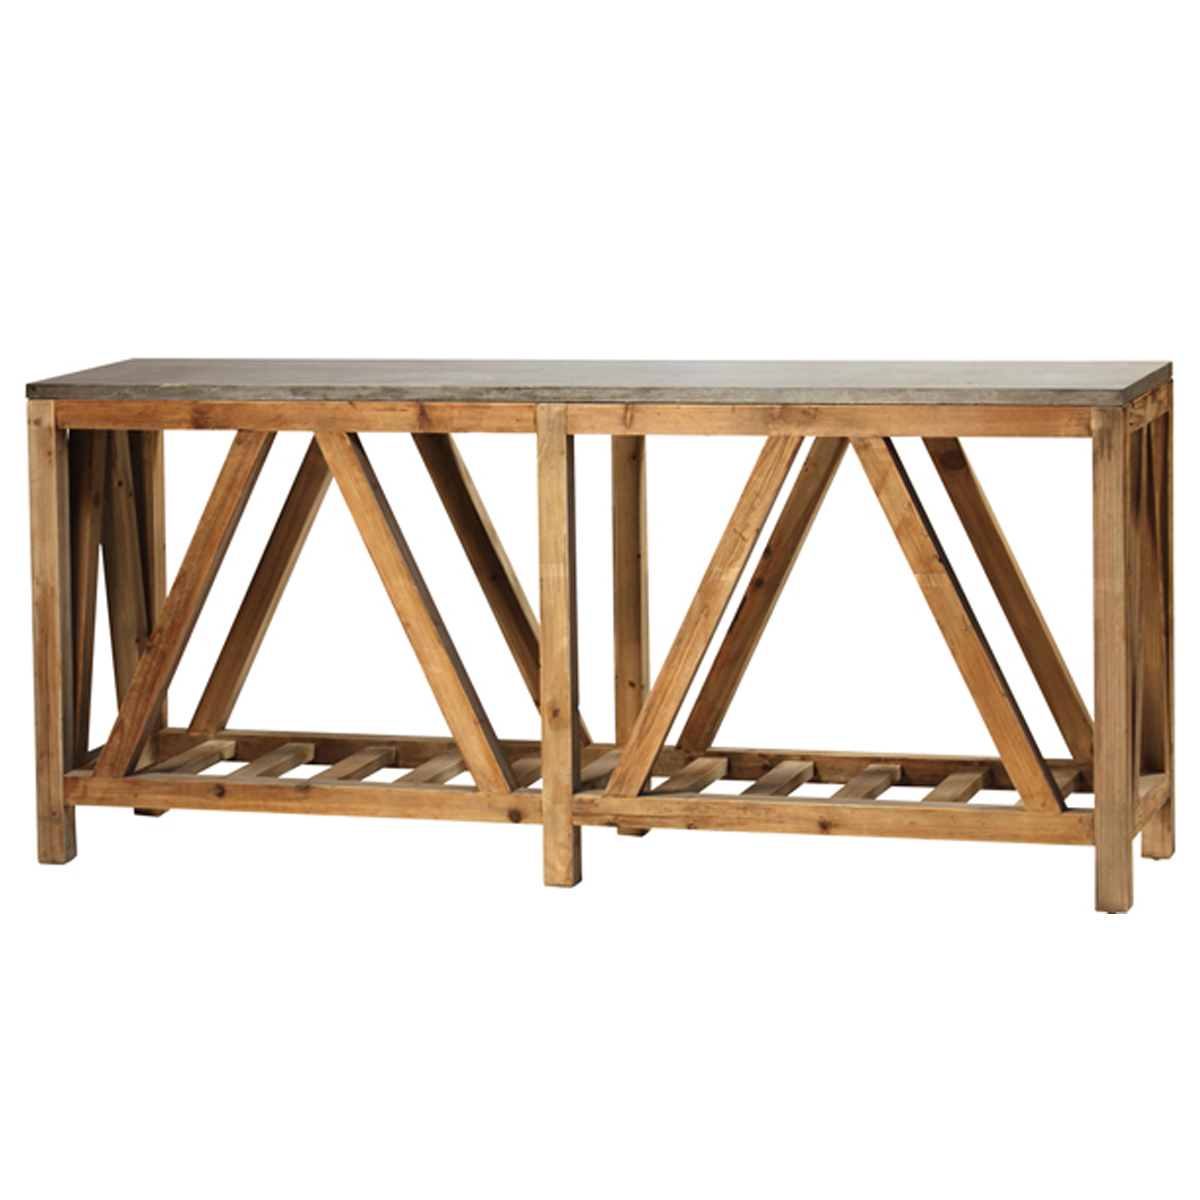 19thc Belgian Bluestone Console Table At 1stdibs Buy Console Table Regarding Bluestone Console Tables (View 13 of 20)